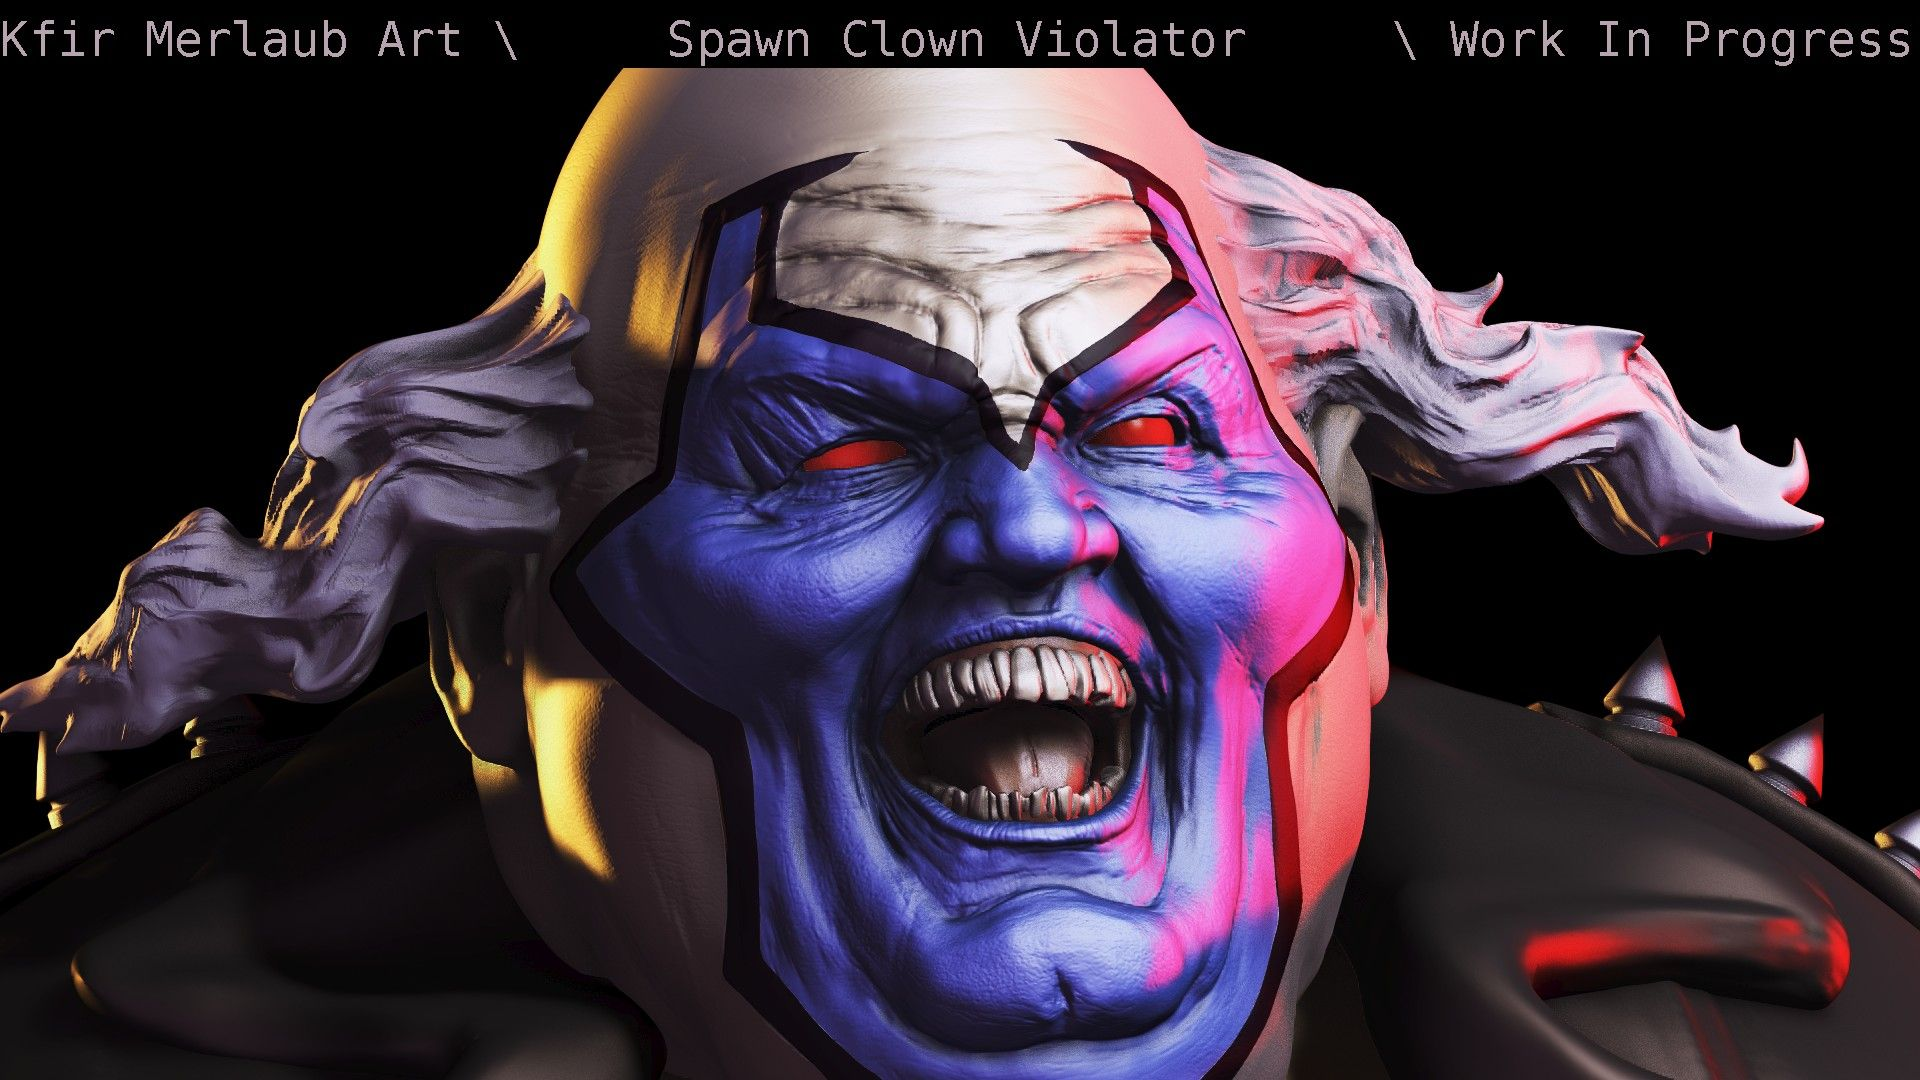 Image Result For Spawn Clown